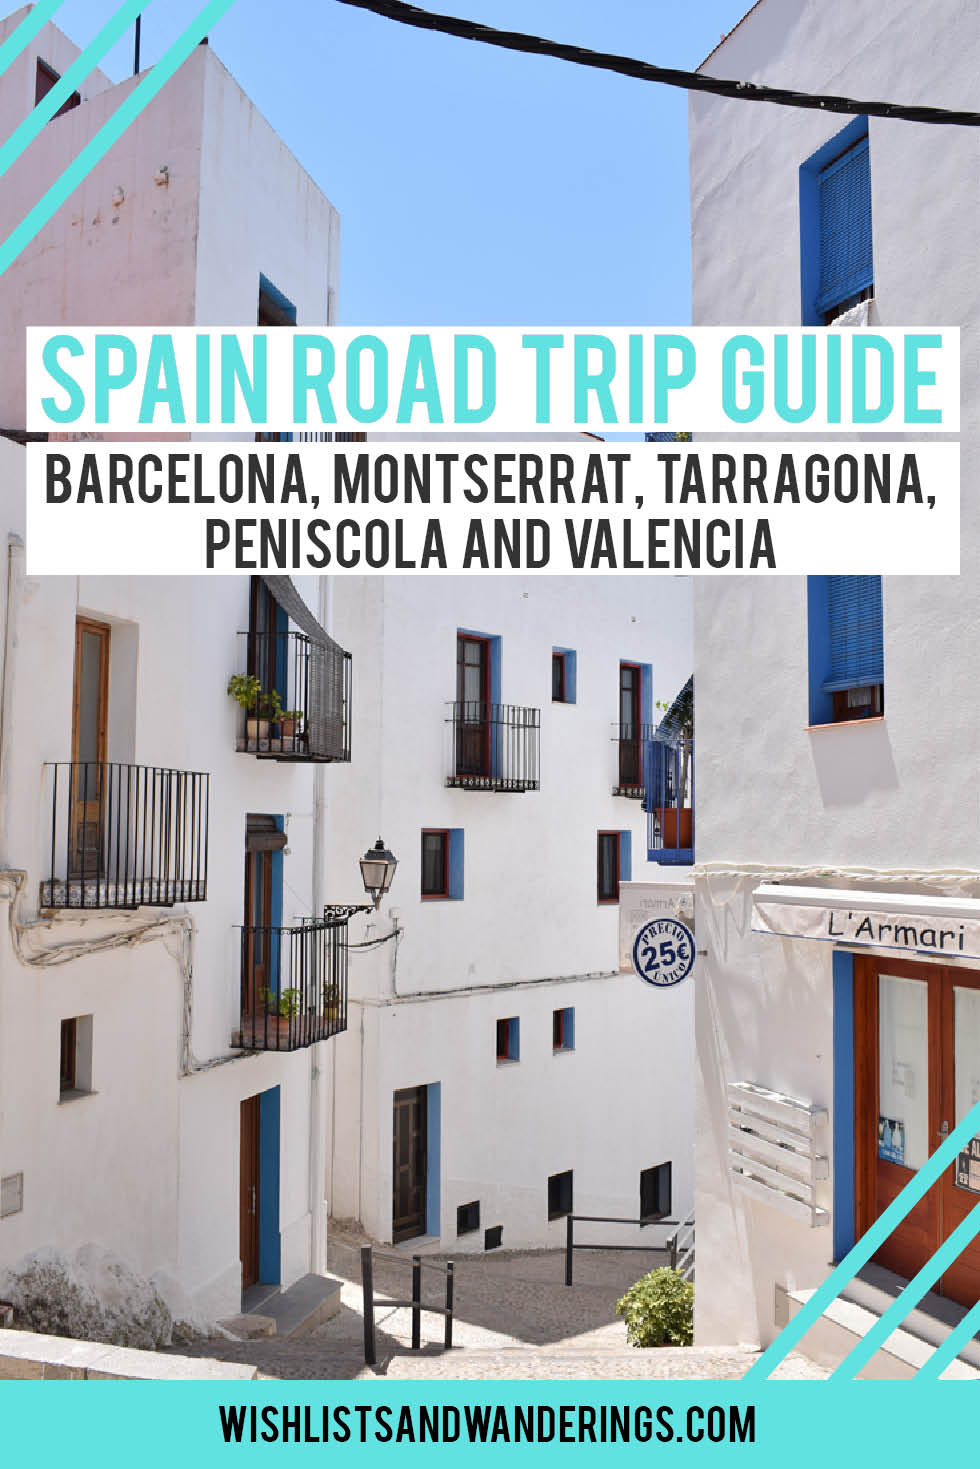 You, some awesome people, a car, and the open road... magic. If you're looking for a different way to explore Spain, this guide will help you plan a route and navigate some of the challenges of roadtripping abroad. From Barcelona to Valencia, via mountain-top monasteries and seaside towns, it's packed with sights to see and tips to make your drive through Spain as smooth as possible.